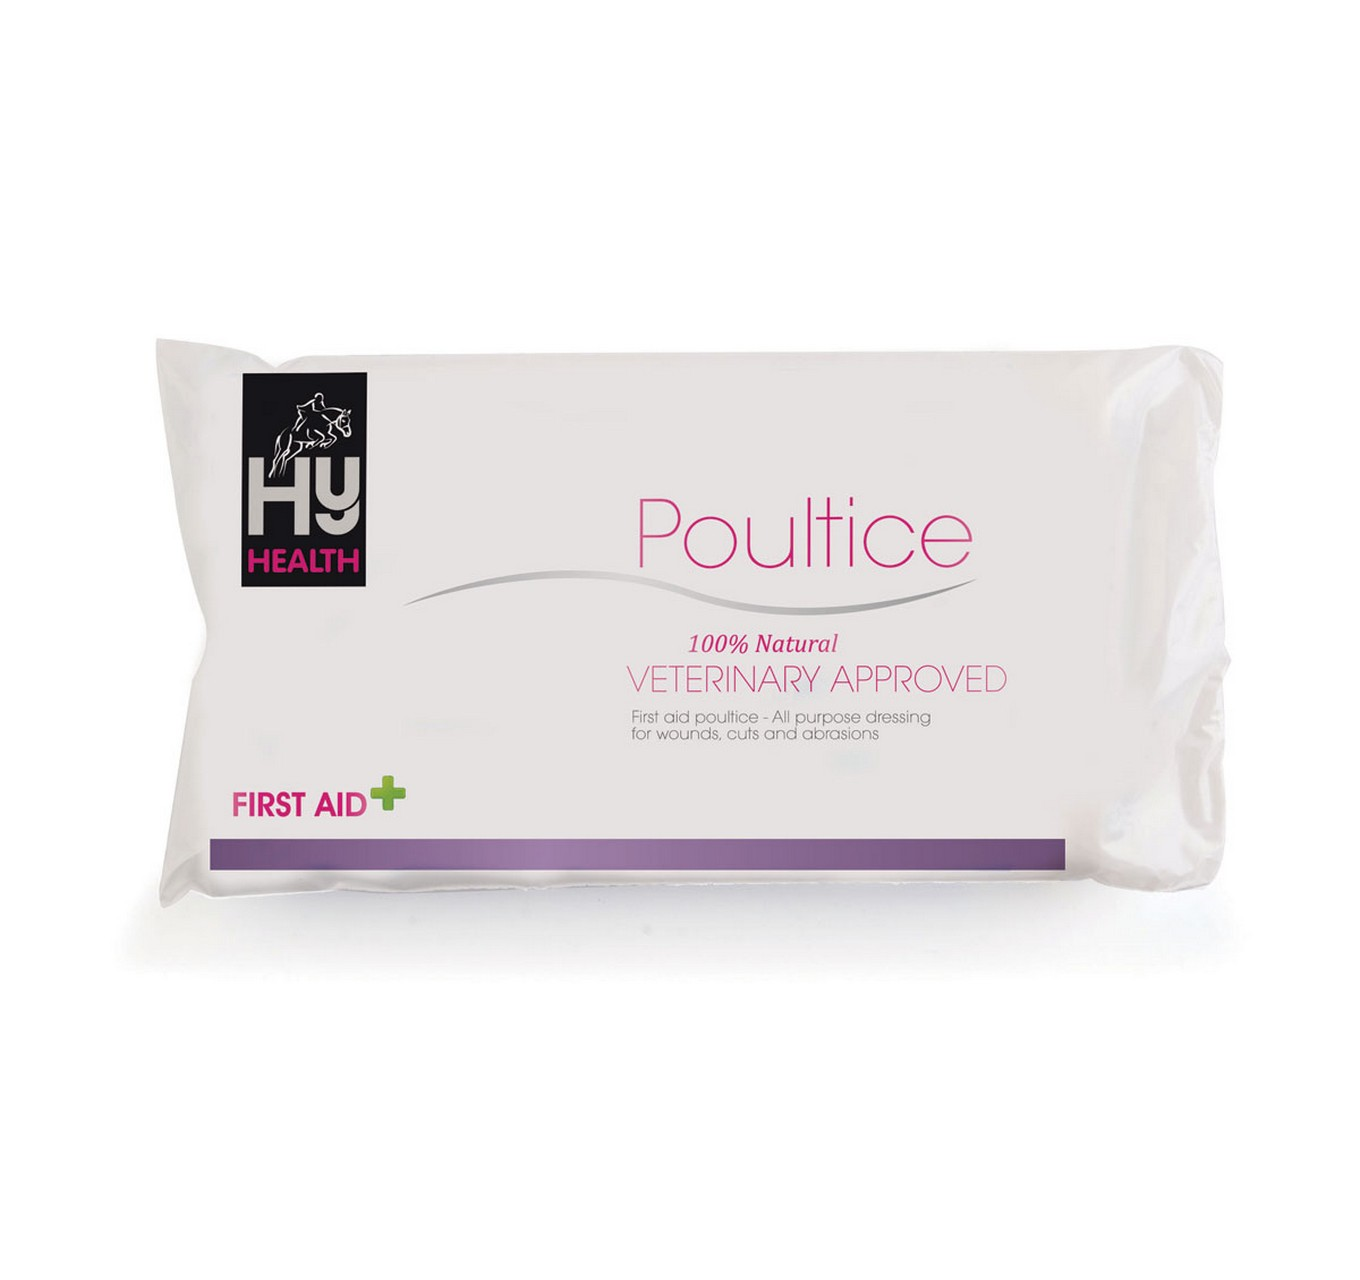 HyHealth Poultice 40g - Each